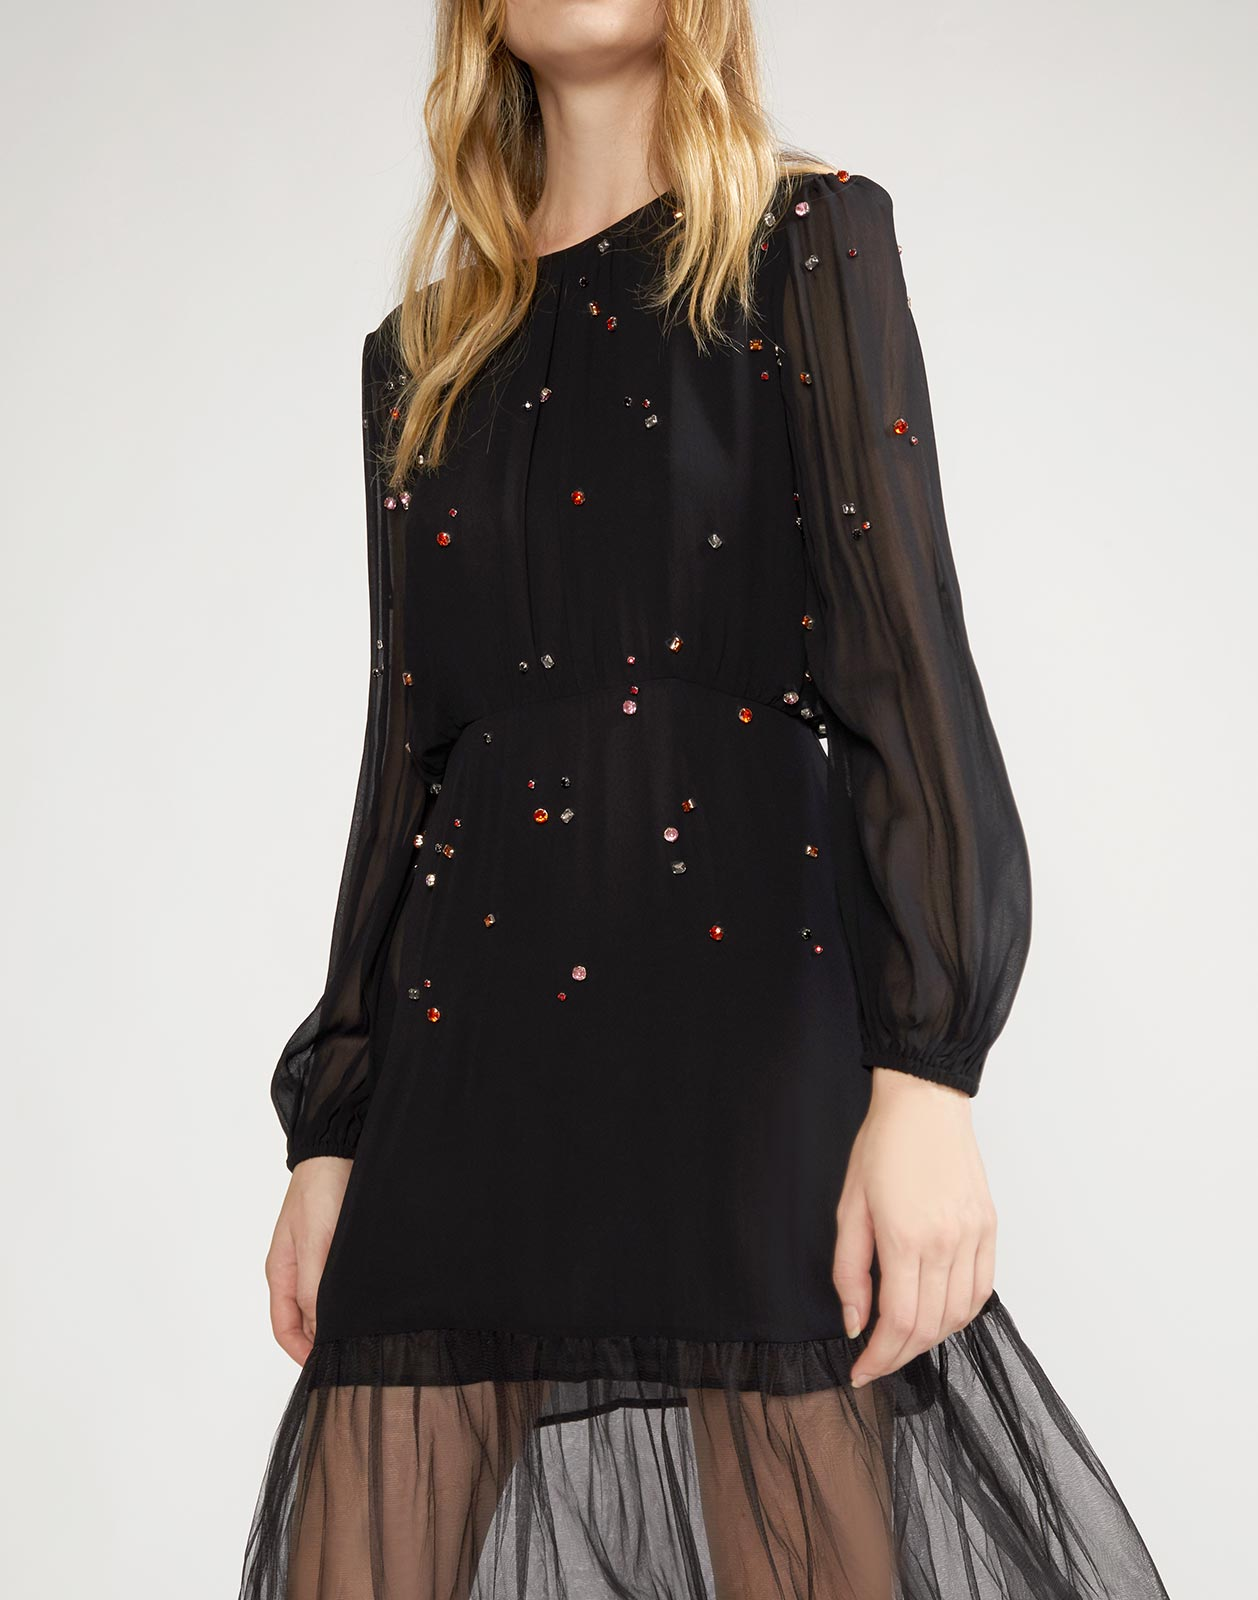 Close view of the Rhinestone embellished dress with sheer chiffon sleeves